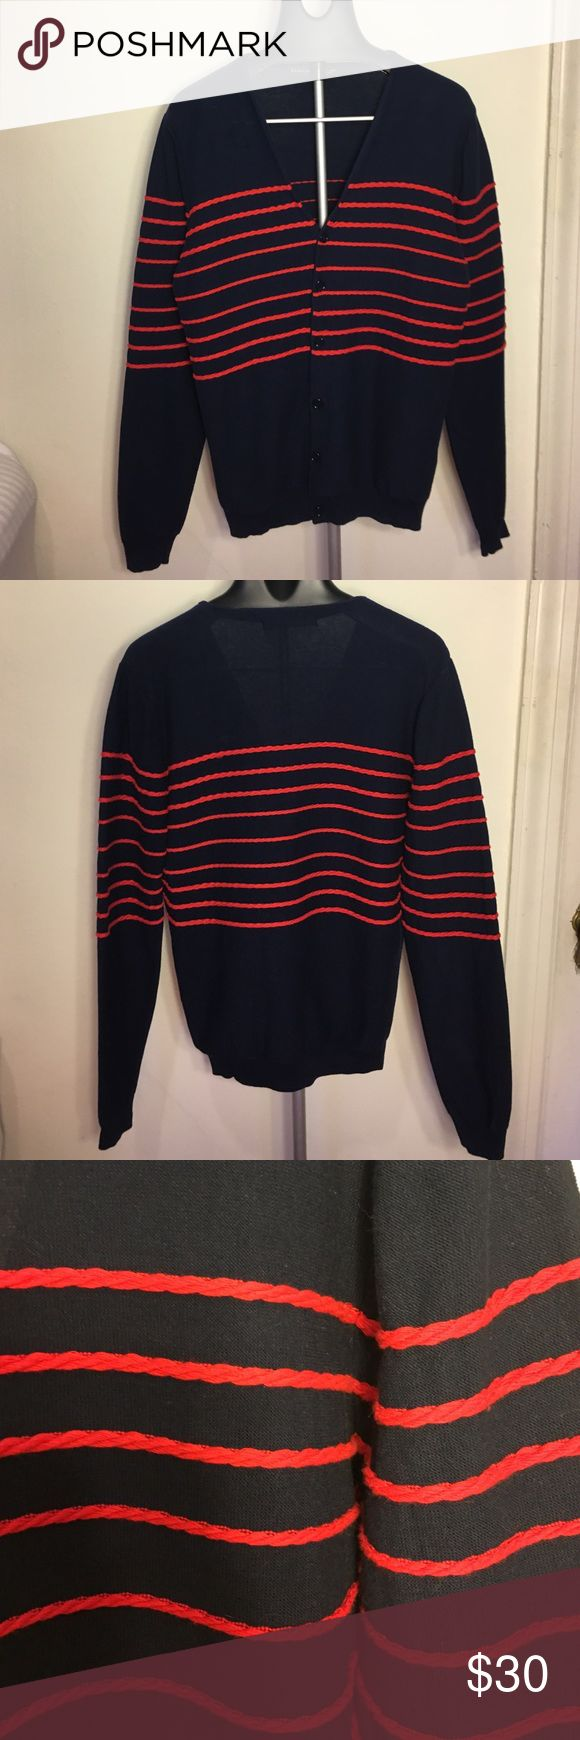 Zara Man Rope Stripe Nautical Cardigan This is a cotton Cardigan from ZARA Man. It's got a really cool rope stripe detail on the sweater. It says it's an XL but it really fits like a medium. I think it was a miss label. It's navy with red rope stripes. Great layering piece and in great condition! No holes or stains or wear. I guarantee everything I sell is in like new condition! Zara Sweaters Cardigan